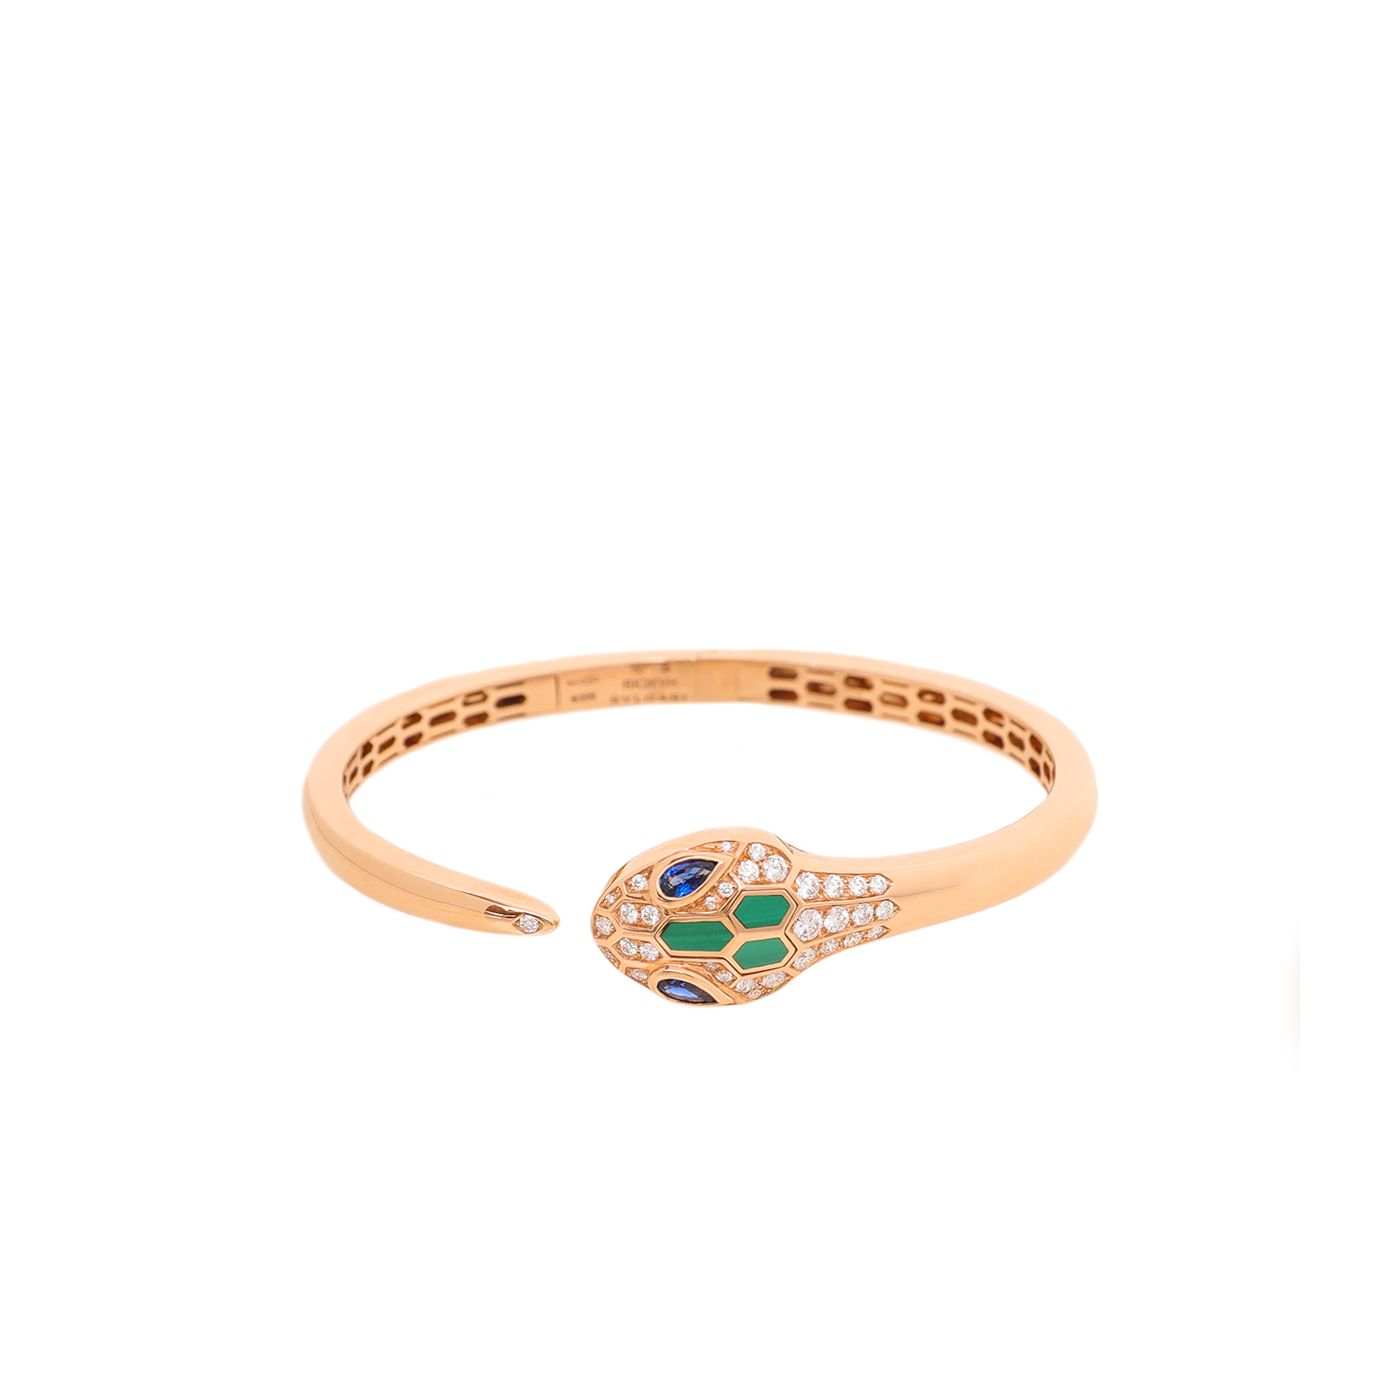 Bvlgari 18K Rose Gold Diamond Malachite Serpenti Saphire Bracelet Small